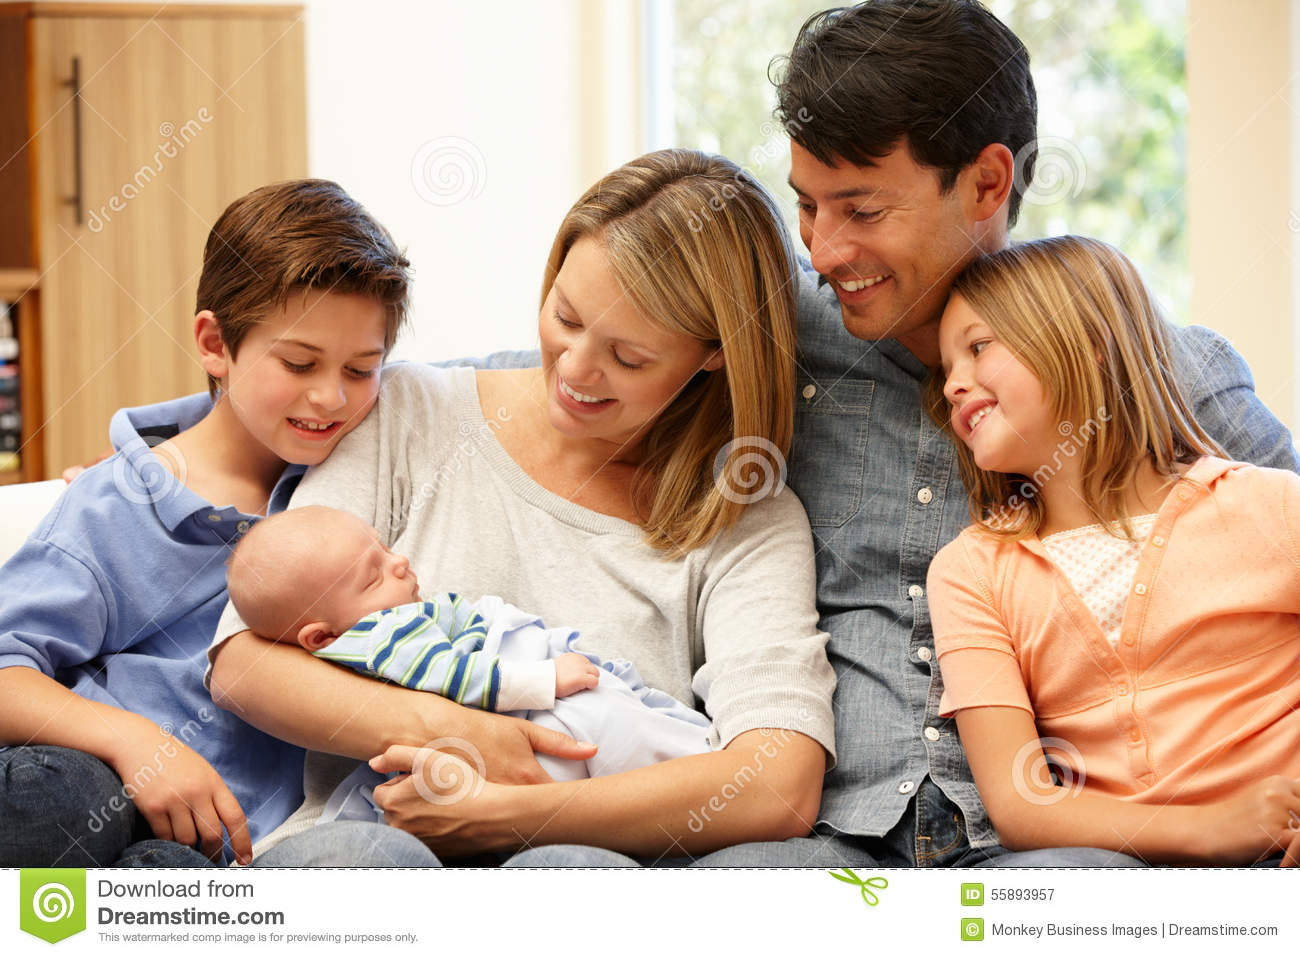 Family at home with new baby